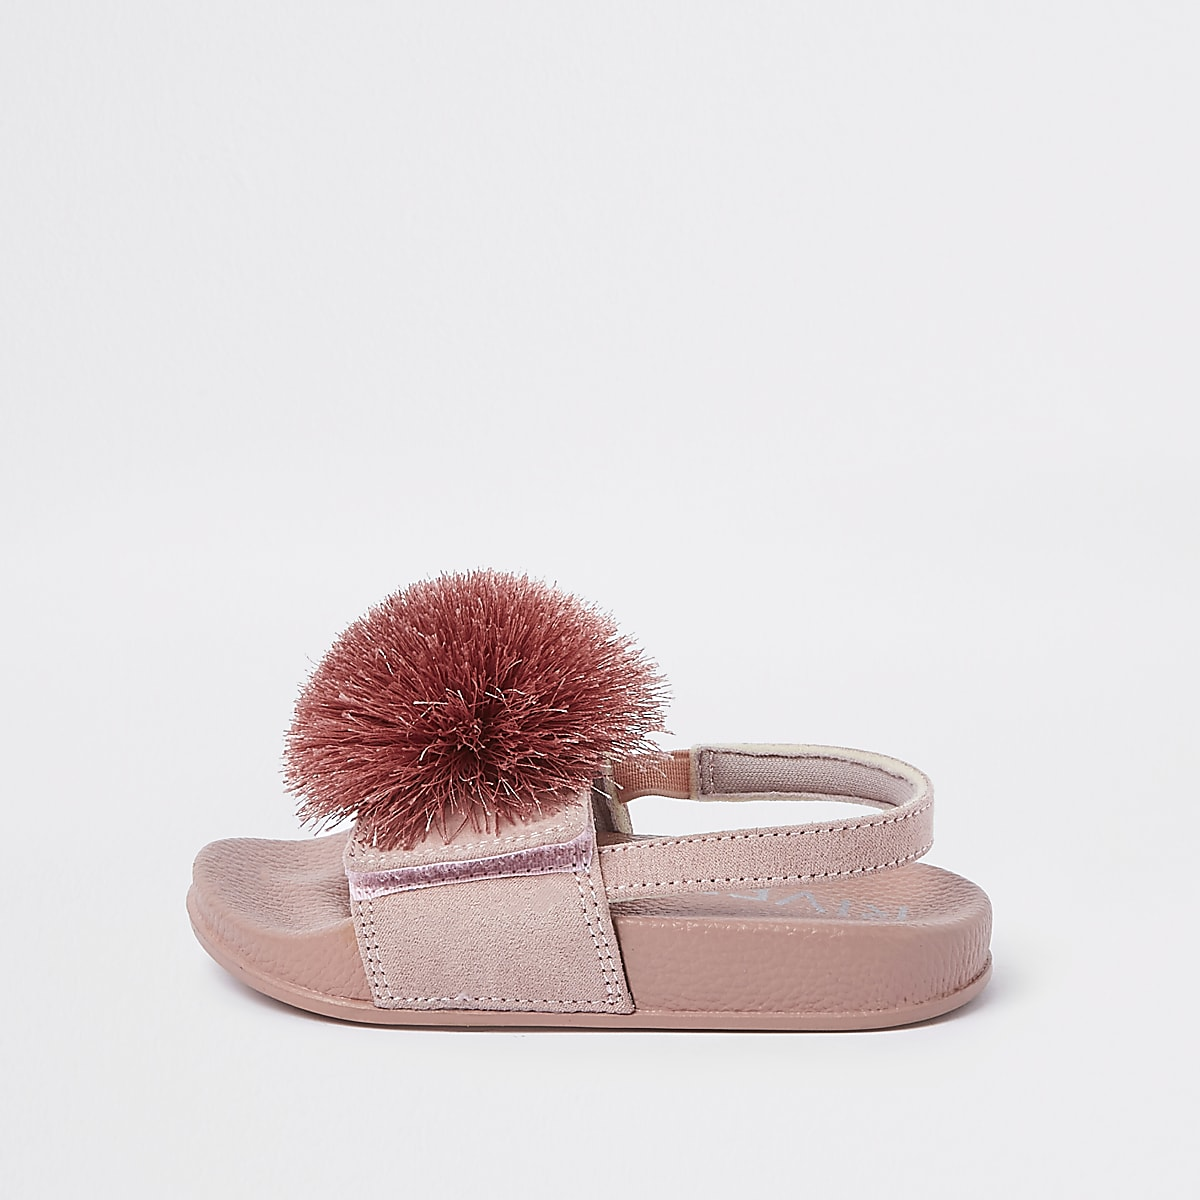 c3d2daff1fc5 Mini girls pink pom pom sliders - Baby Girls Sandals - Baby Girls Shoes    Boots - Mini Girls - girls